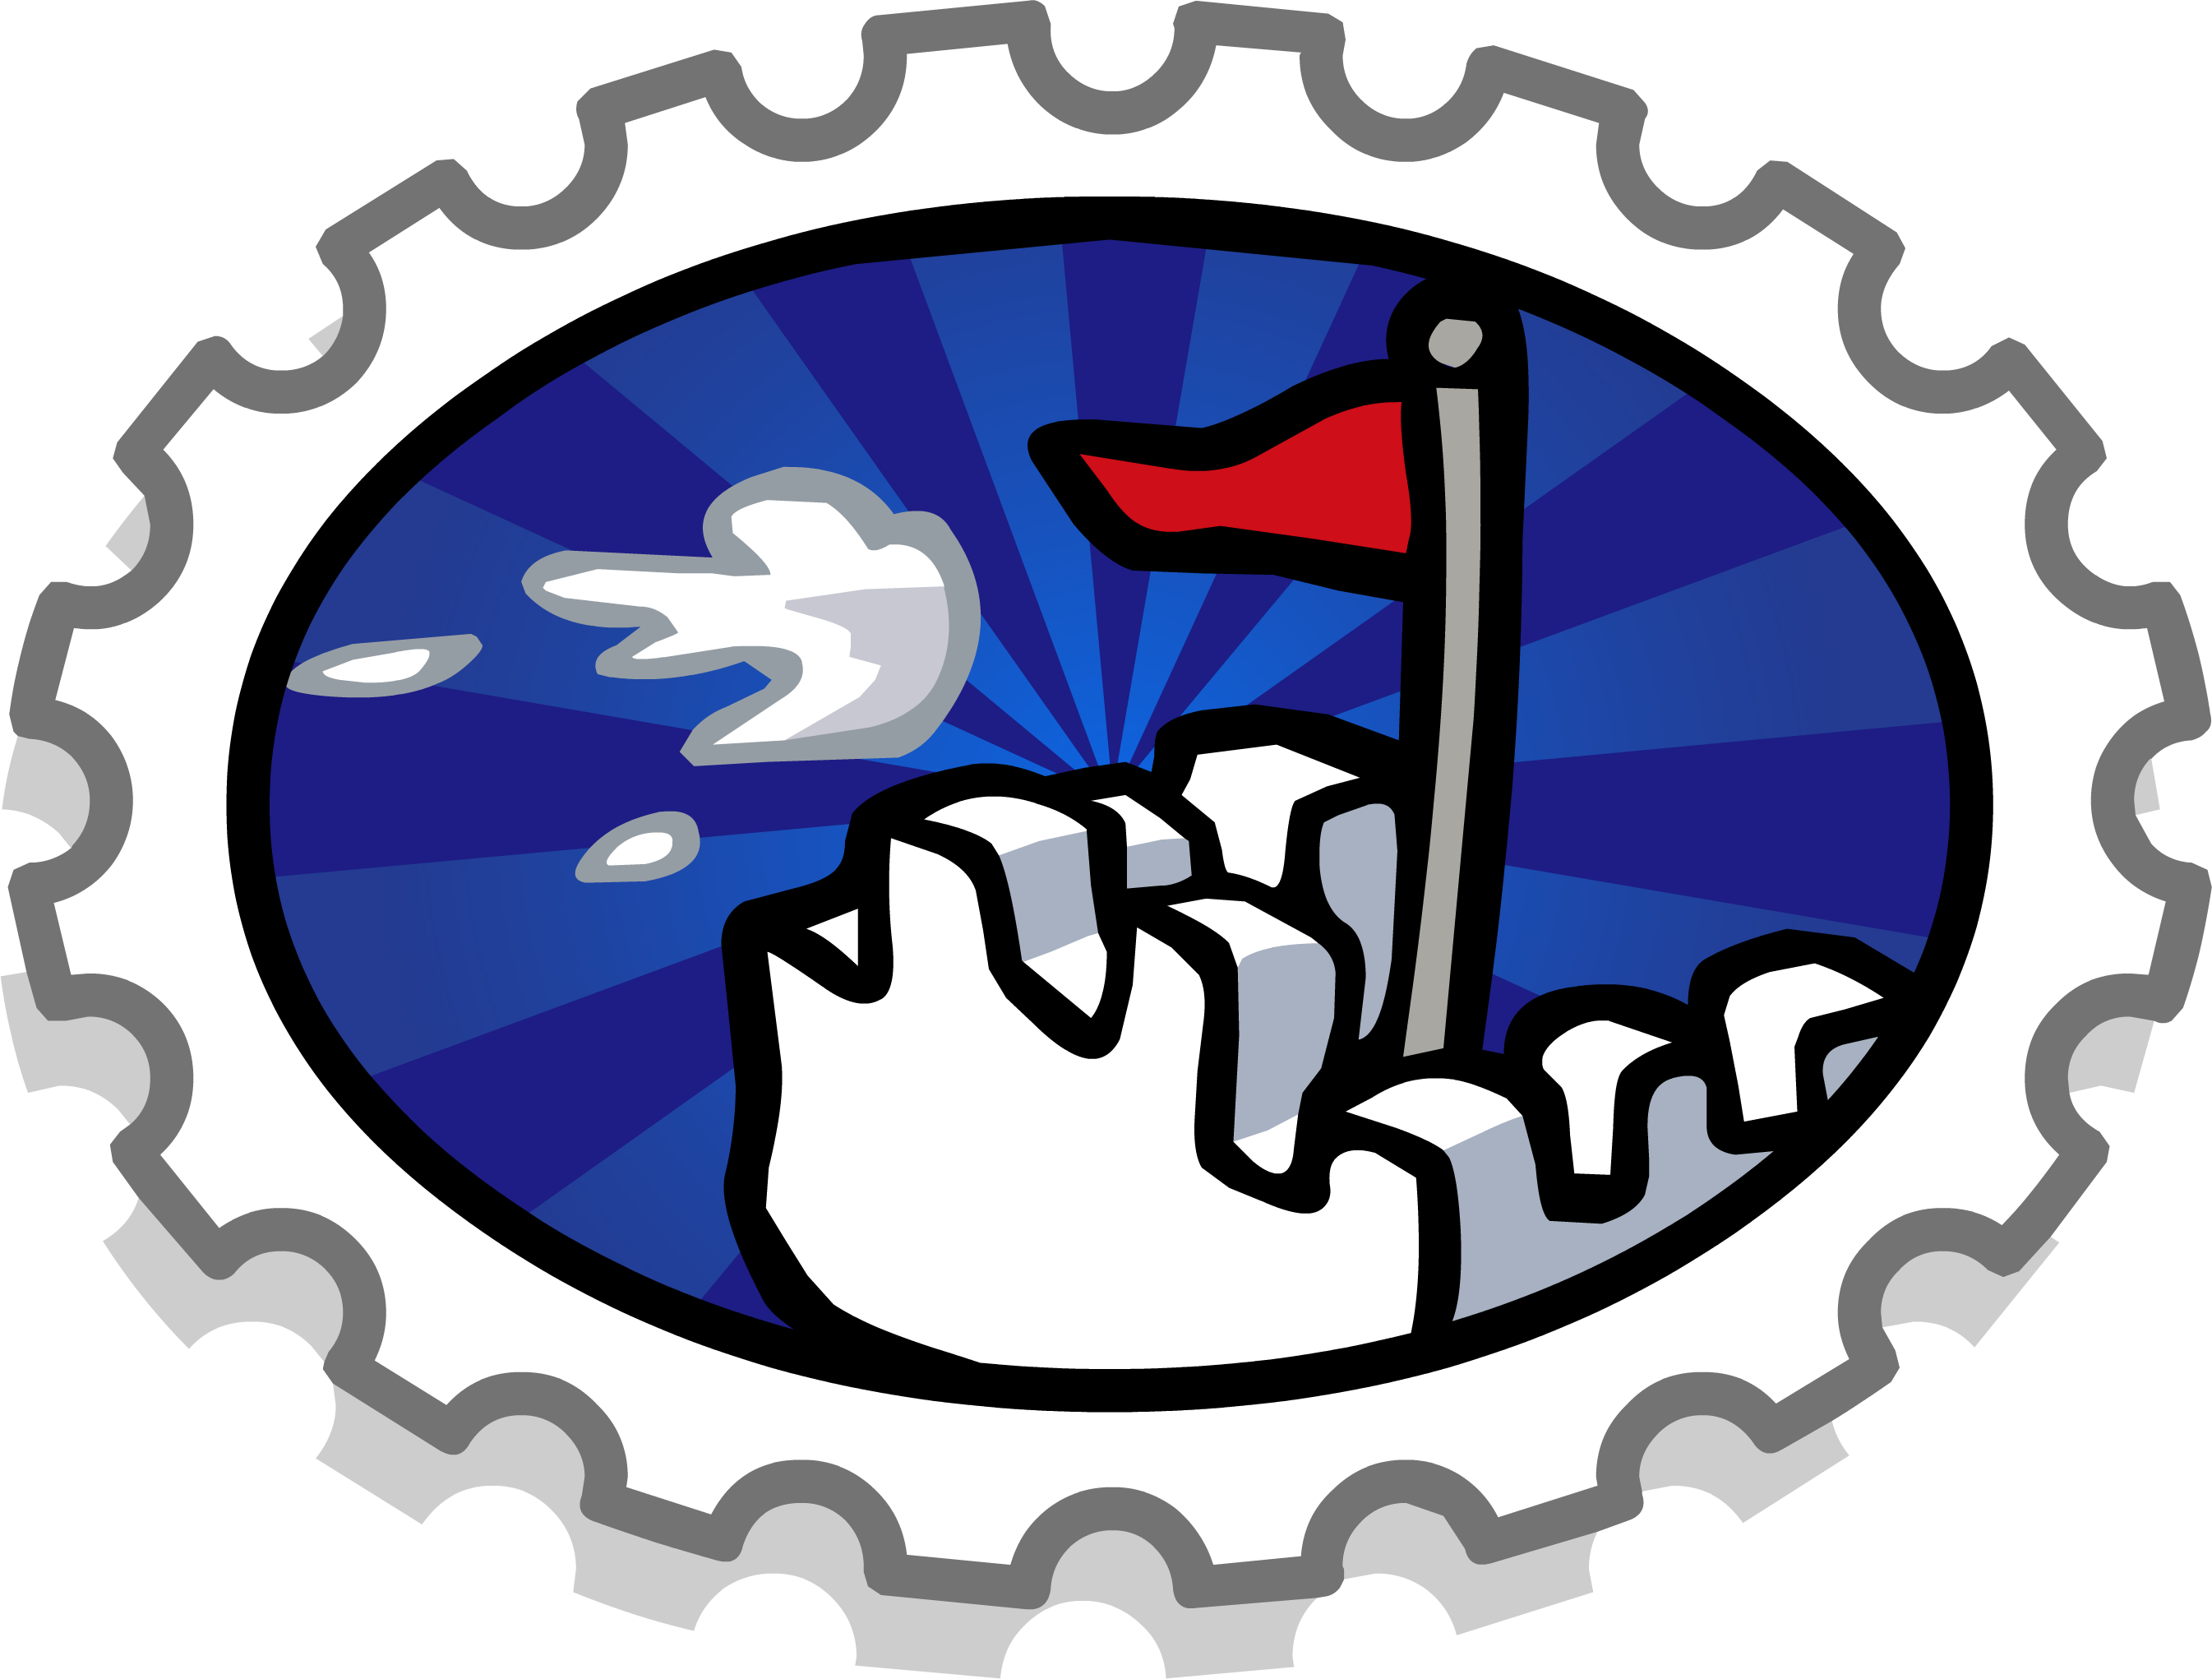 Missions clipart official stamp. Fort battle club penguin